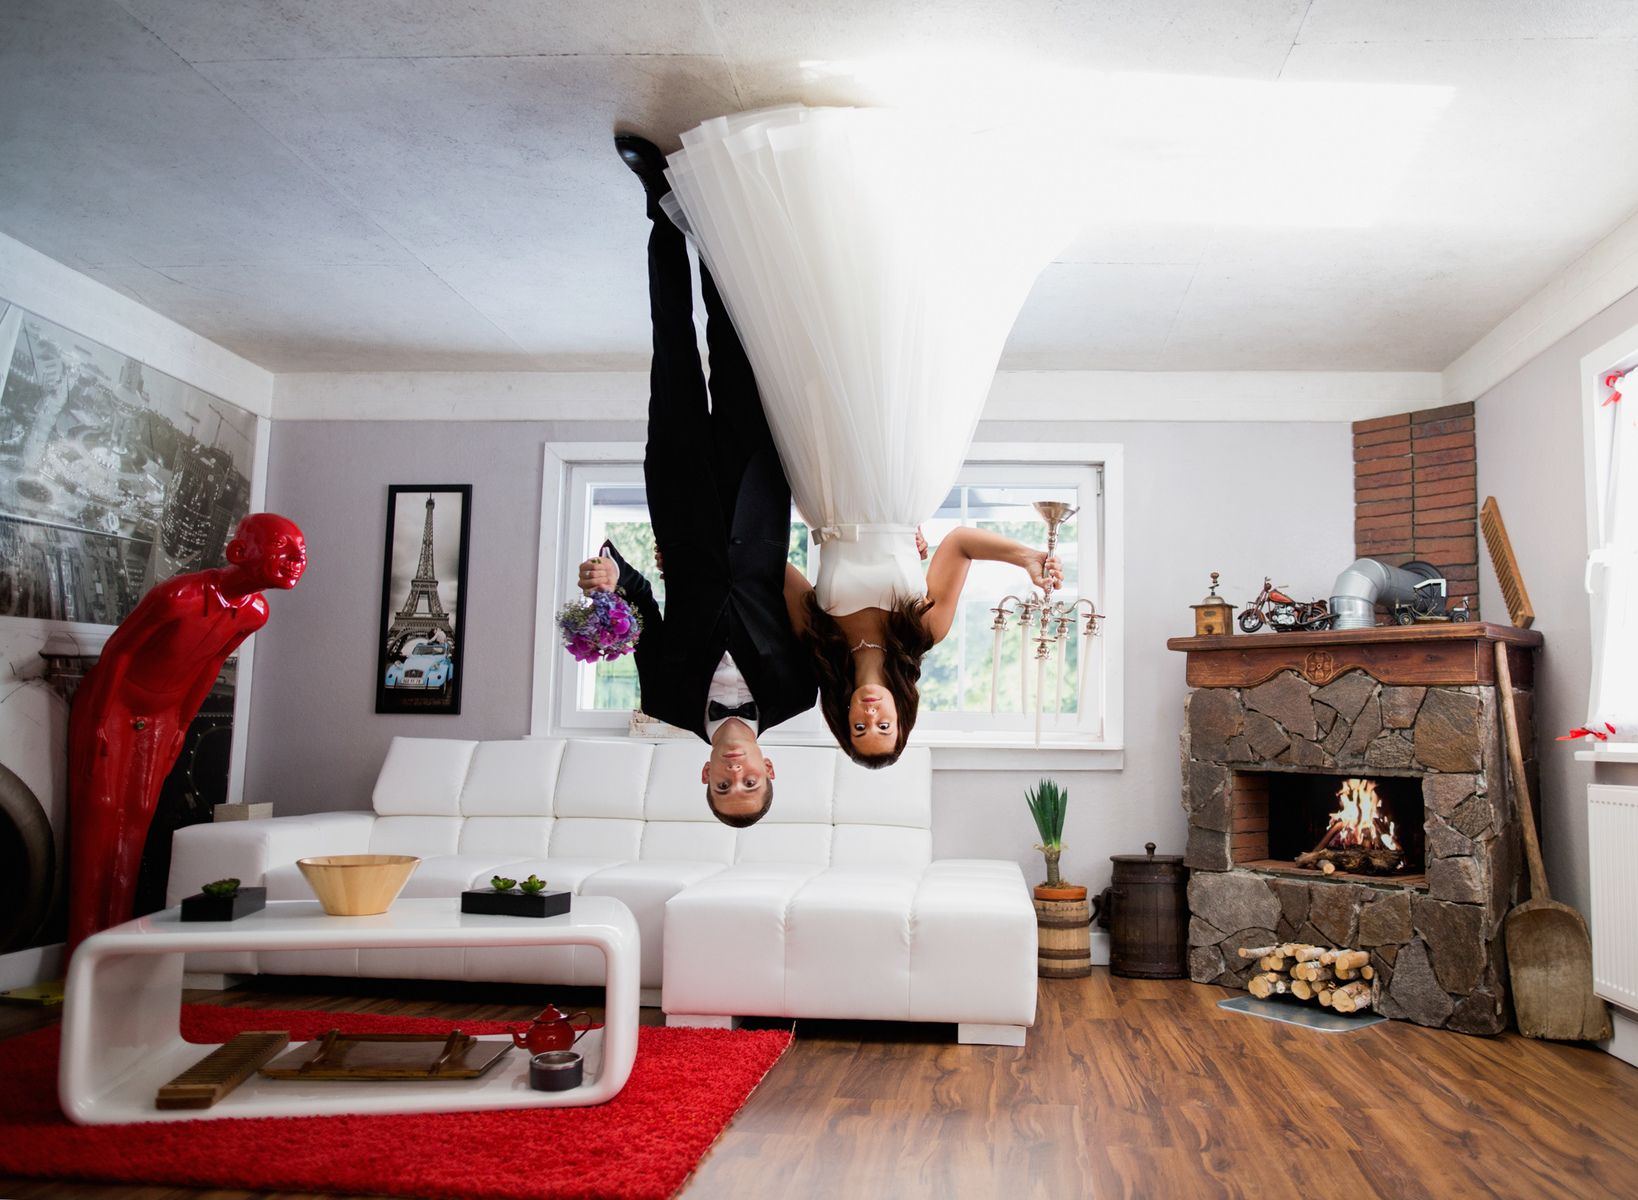 Upside down wedding from unique destination wedding in Austria